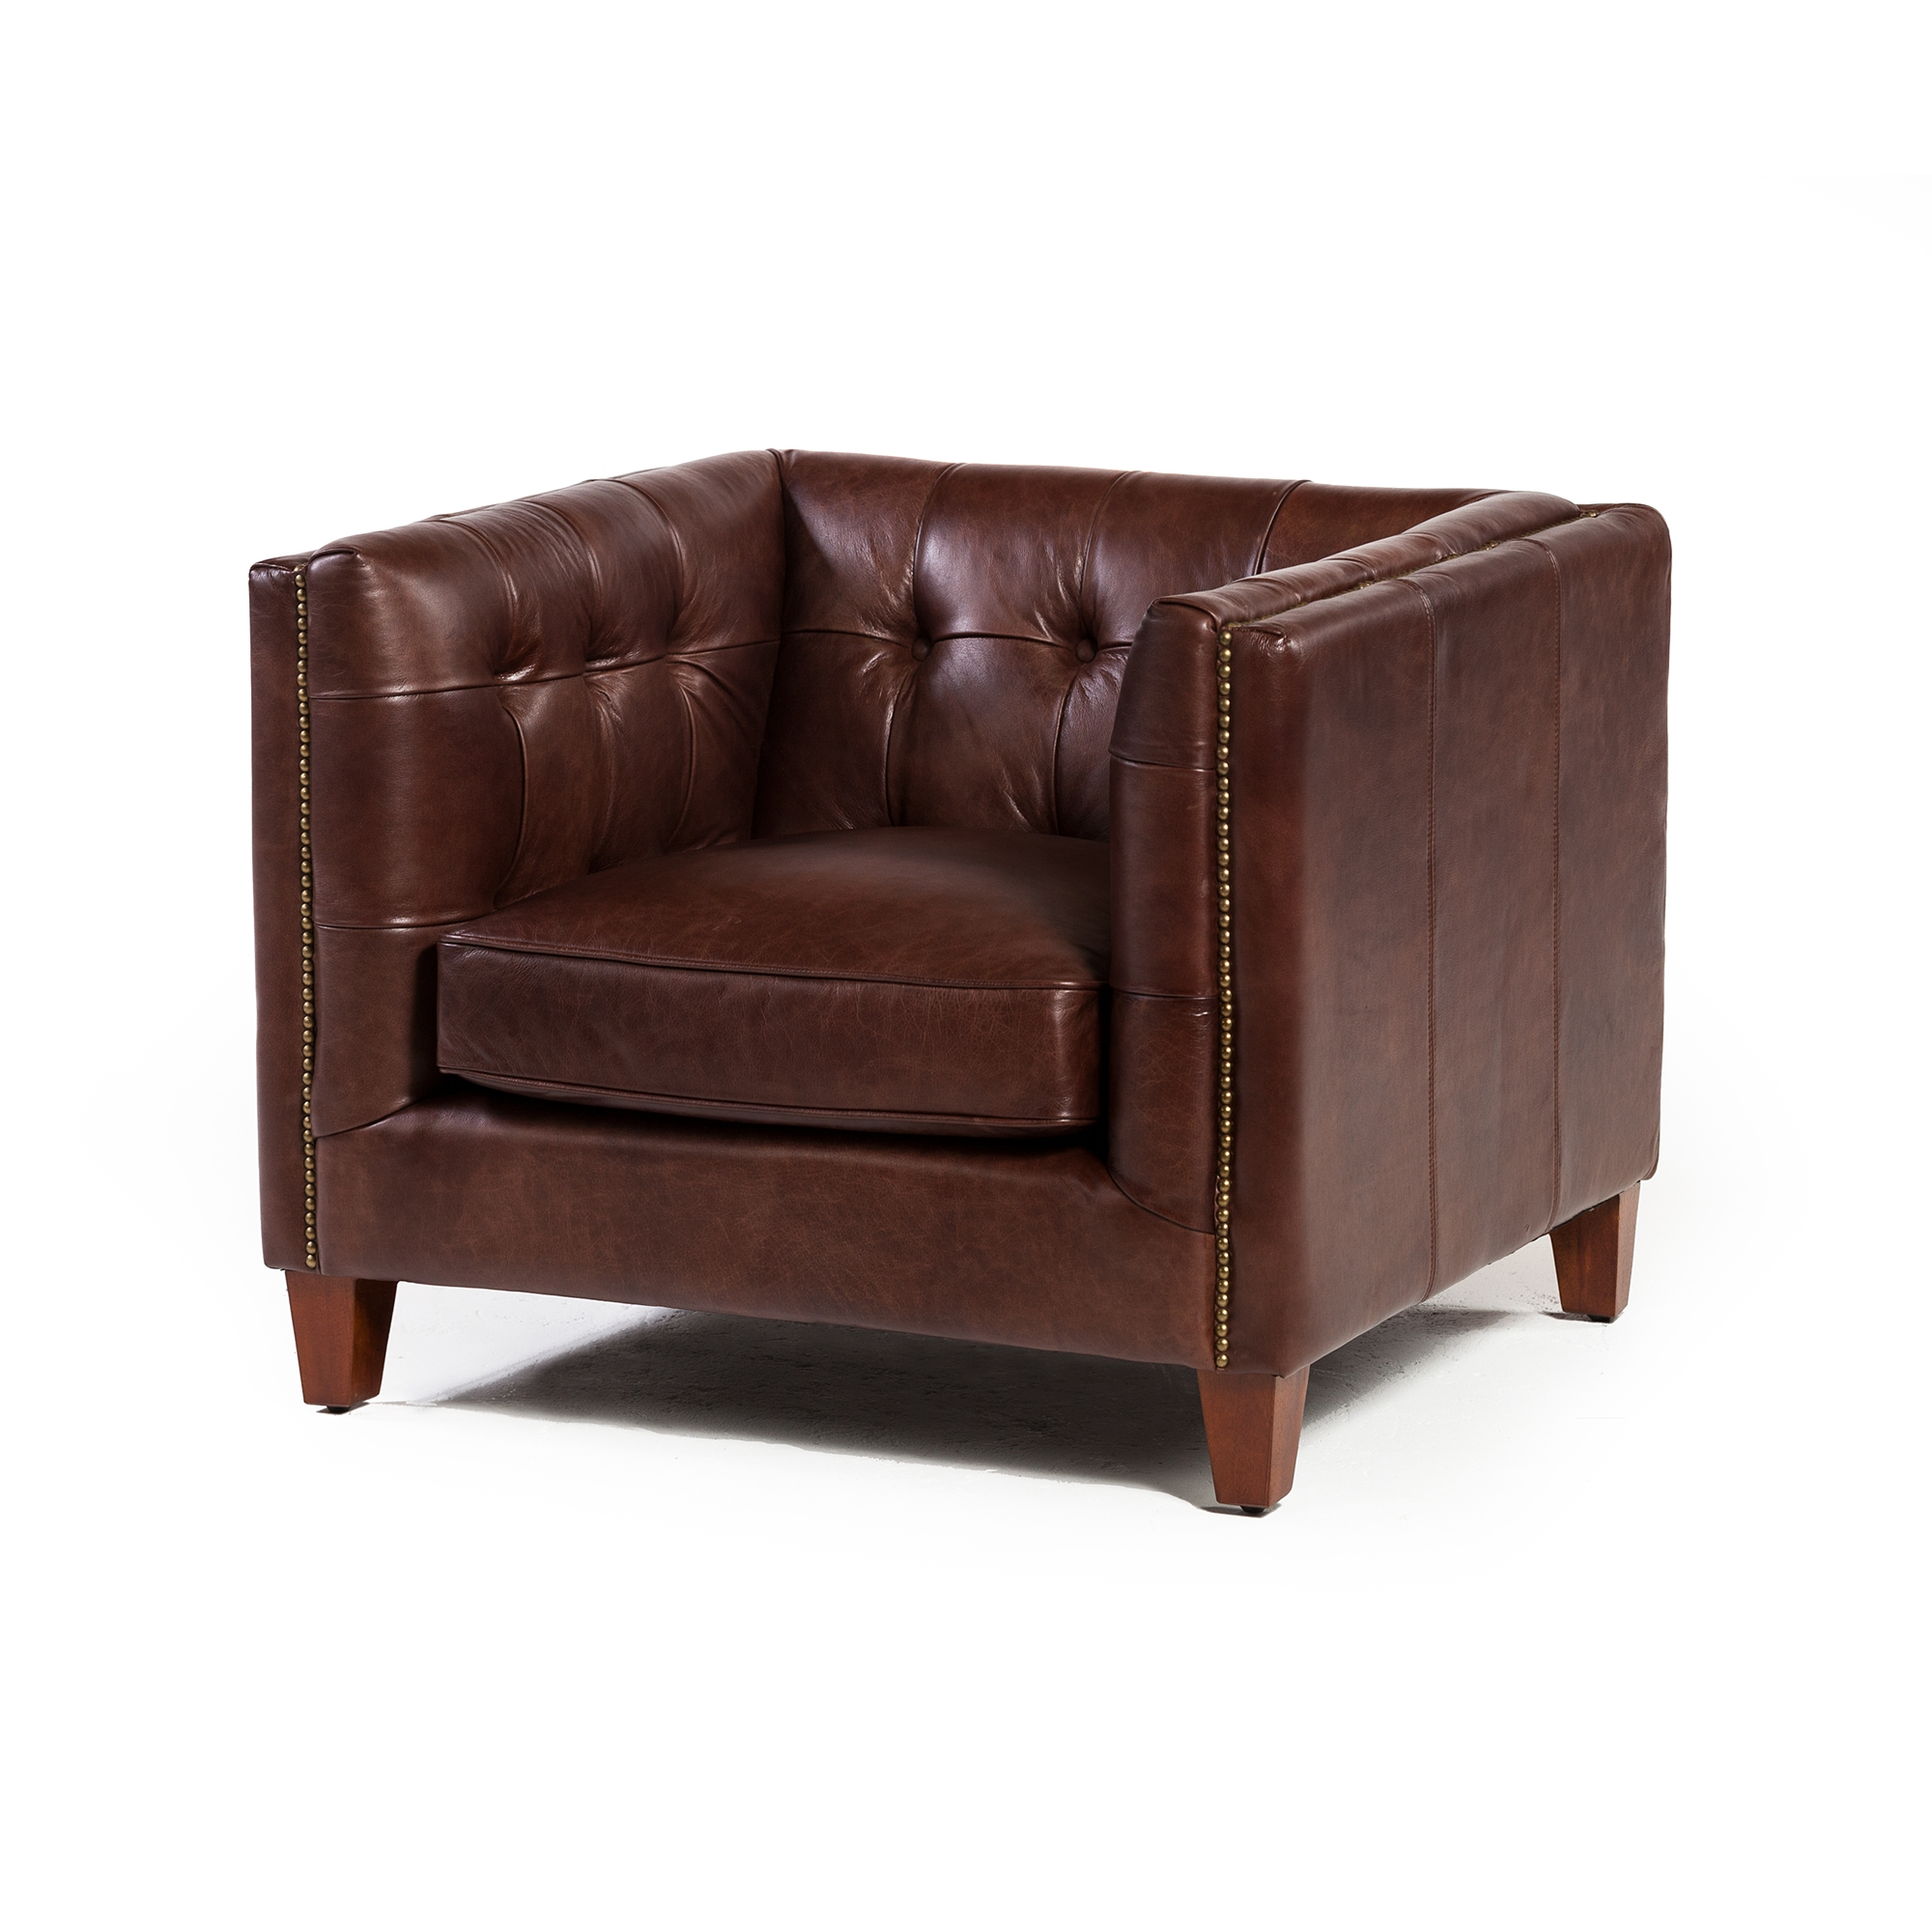 Cape Town Club Chair In Antique Brown Leather The Khazana Home Furnishings